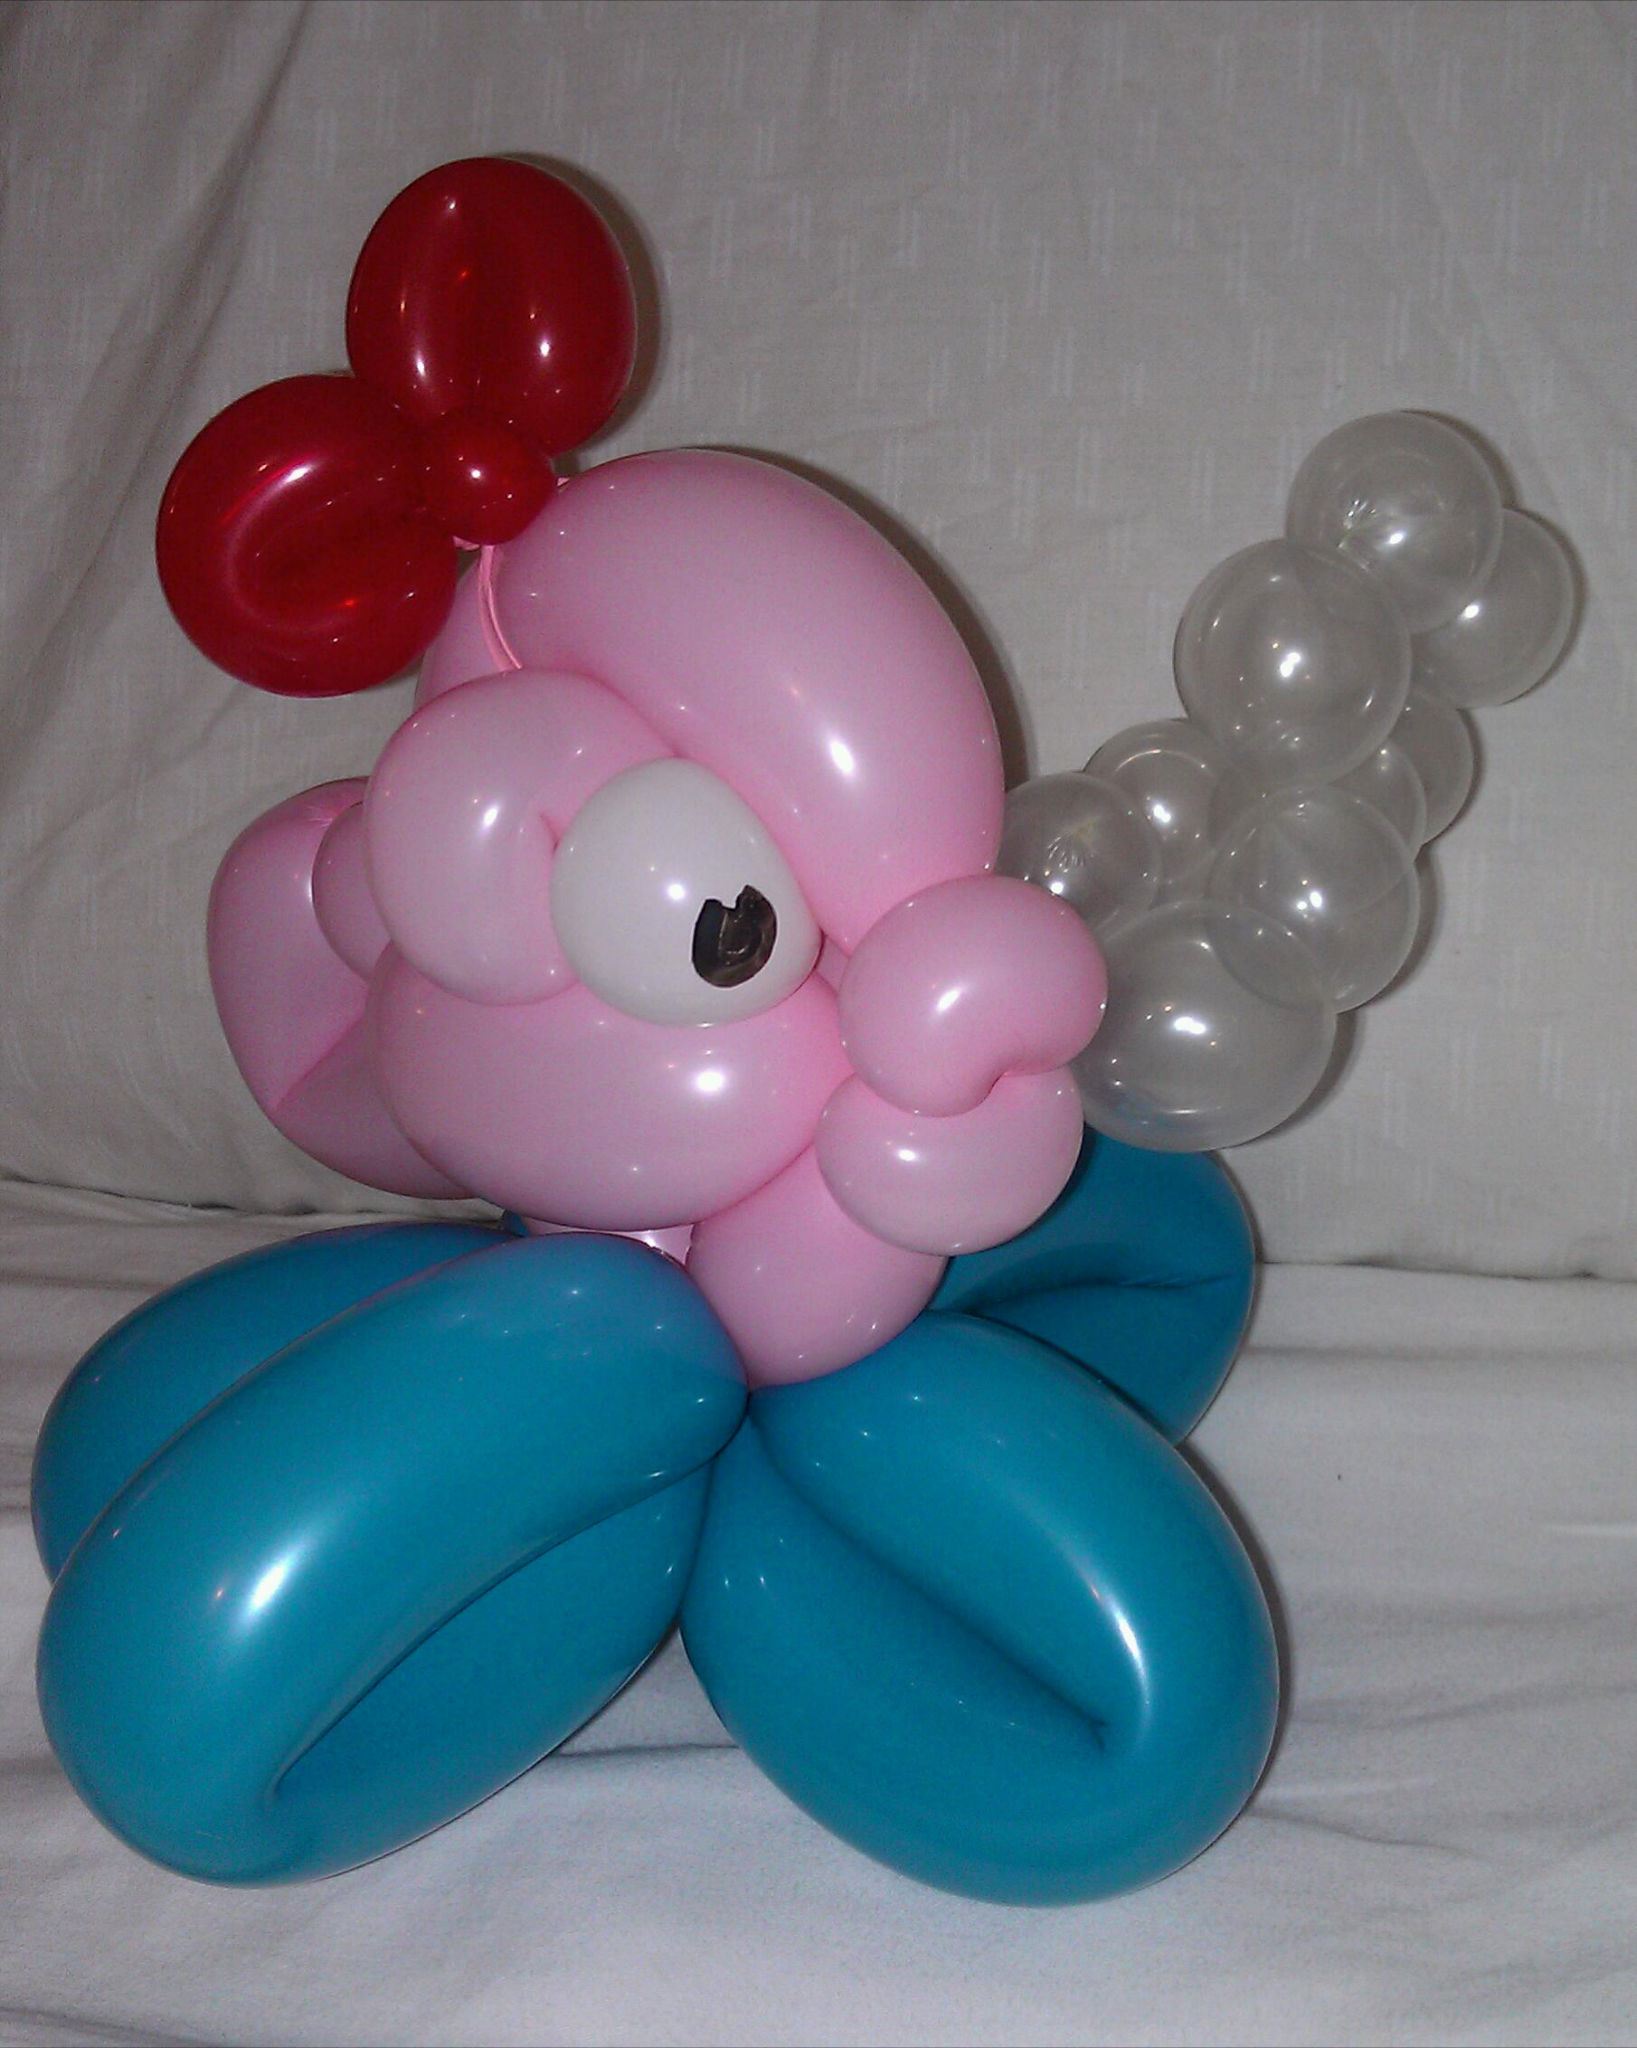 Rosie O Entertainment - Balloon Twisted Fish with bubbles